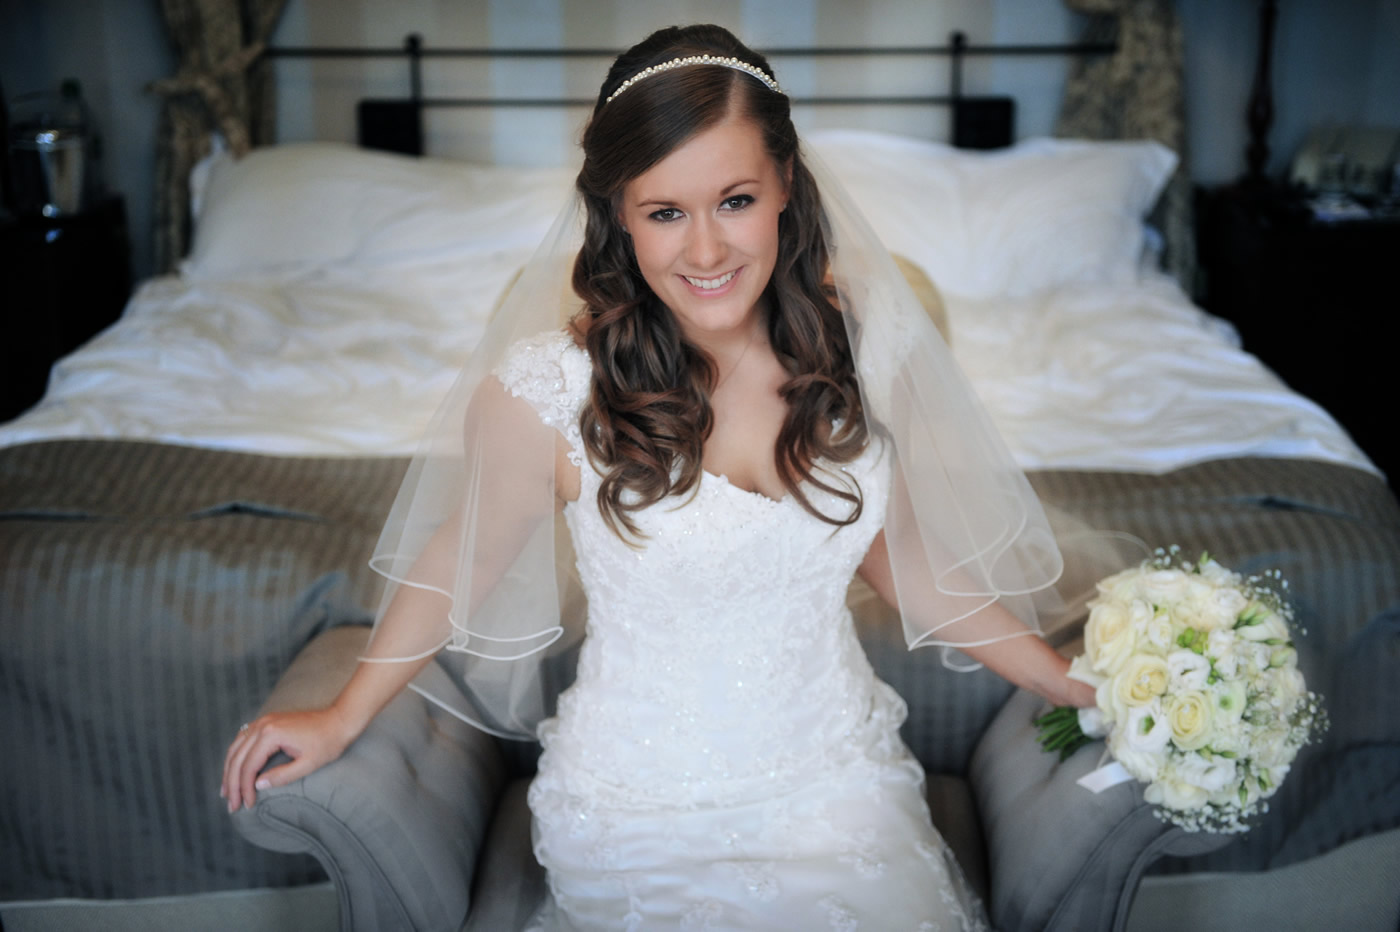 Wedding Hair & Makeup For Brides, Bridesmaids & Mothers in Berkshire, Surrey & surrounding areas